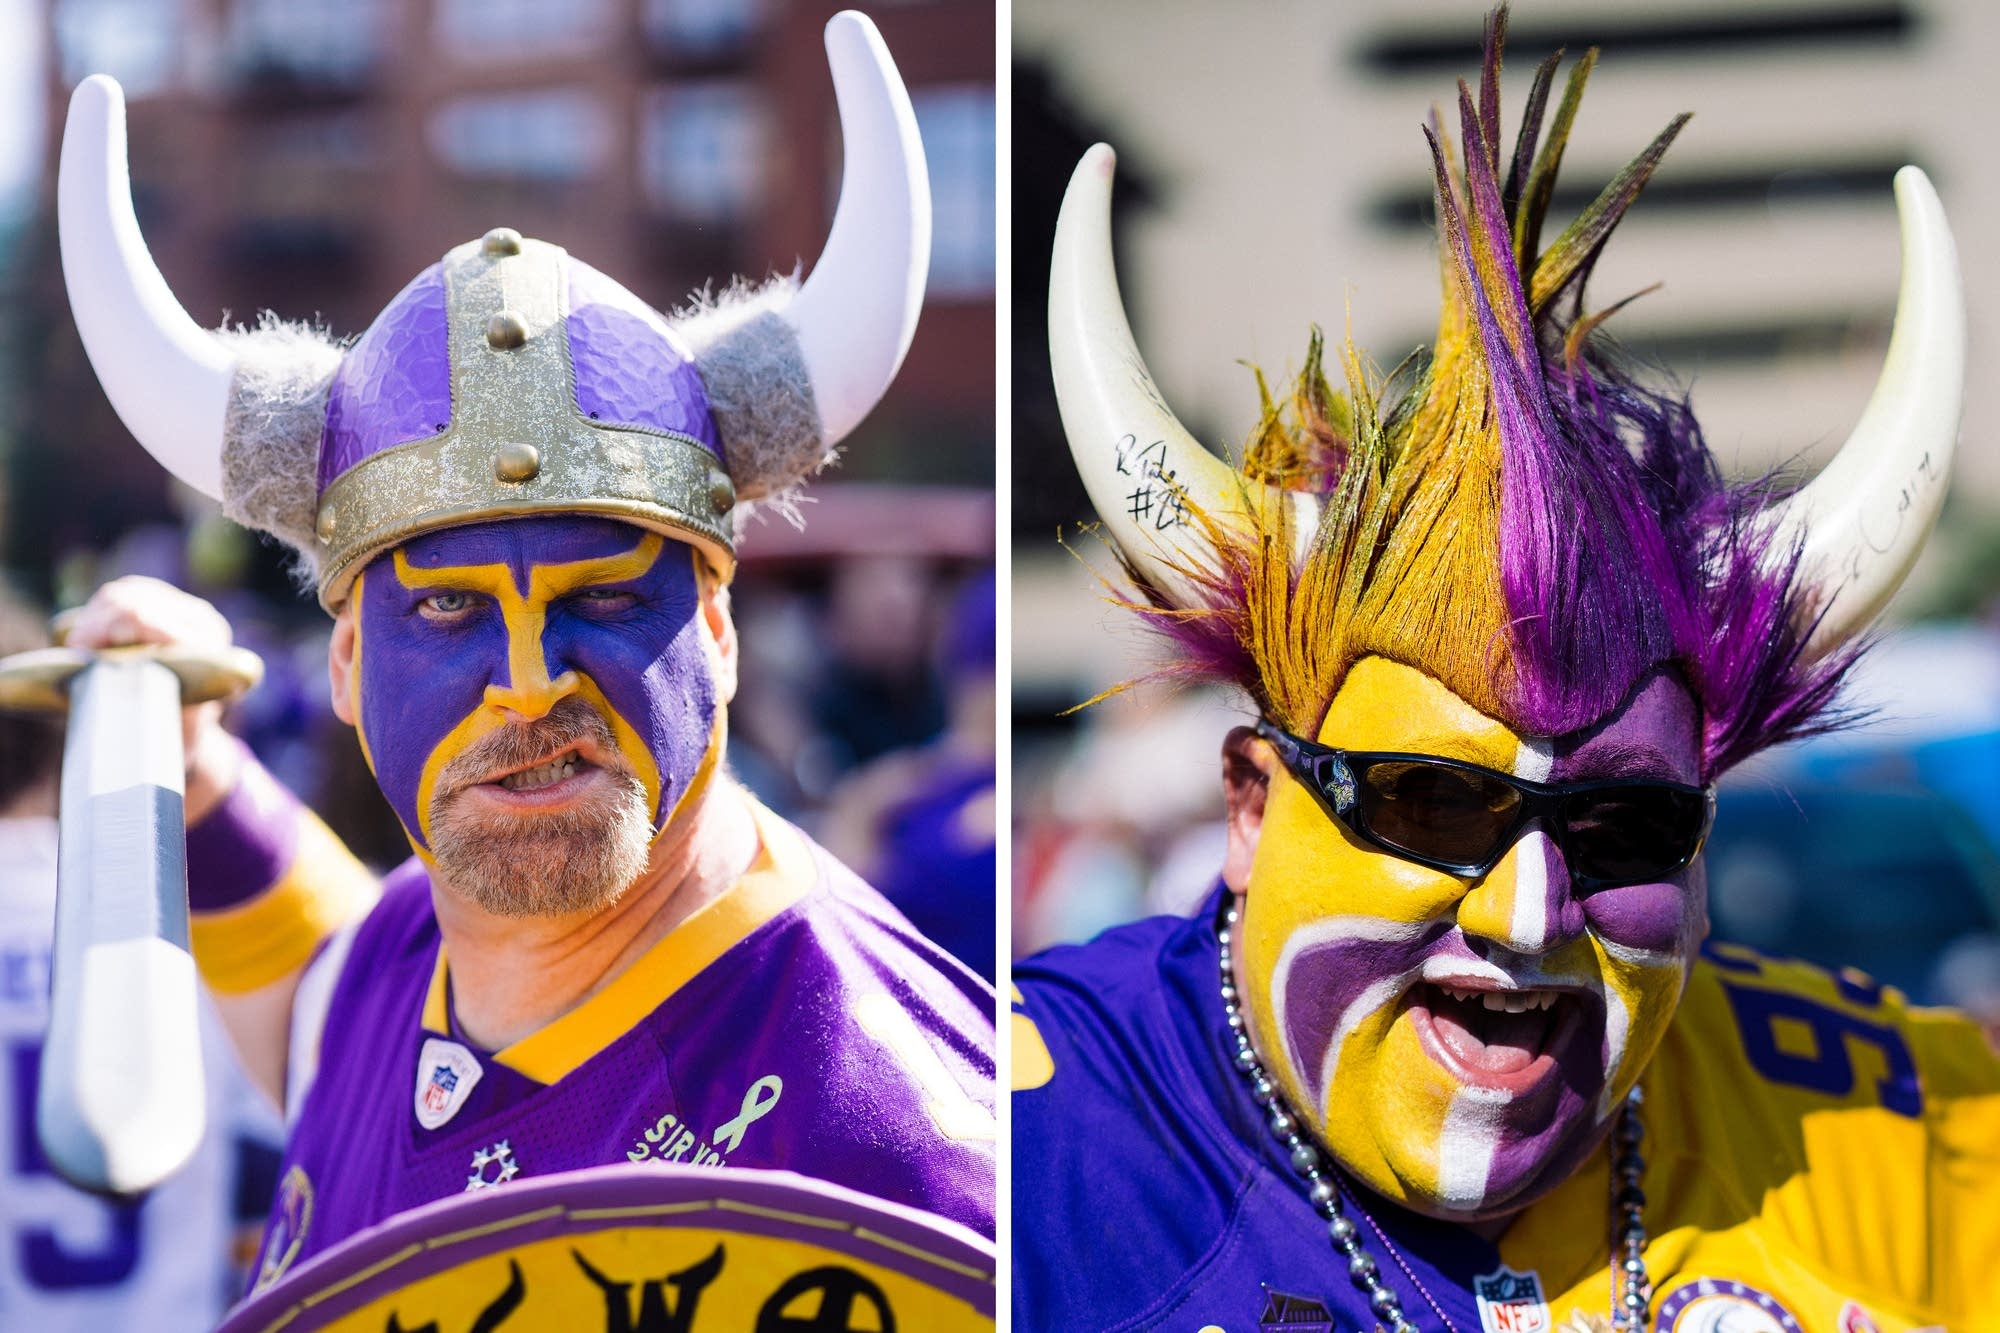 Photos Superfans With Flair At Vikings Opener Mpr News